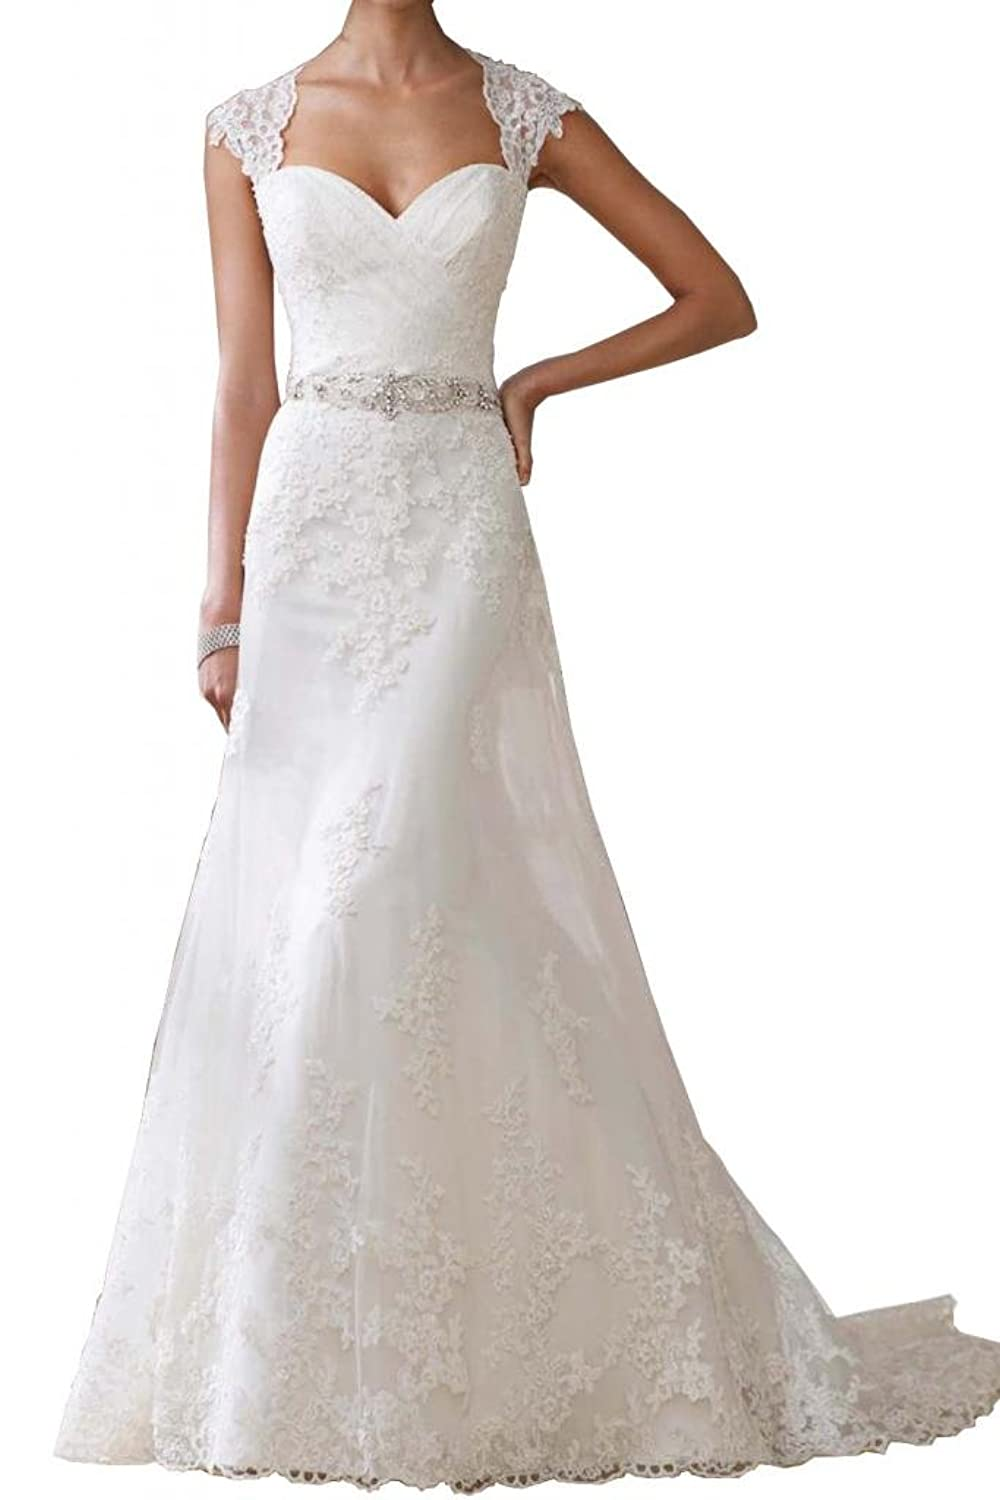 MILANO BRIDE Empire Wedding Dress For Women Sweetheart A-line Lace ...